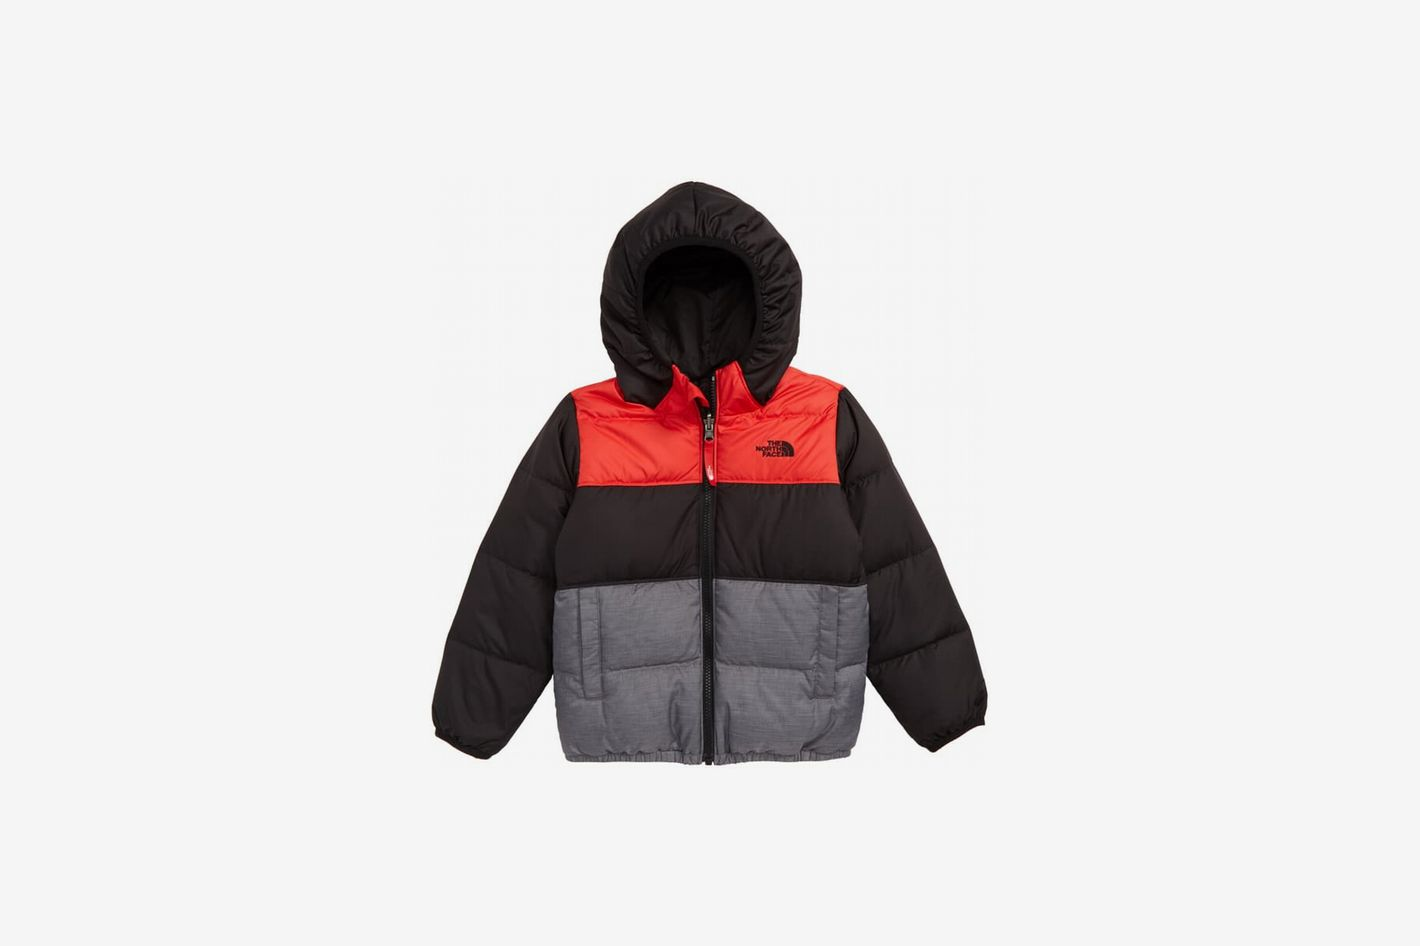 North Face 'Moondoggy' Water Repellent Reversible Down Jacket